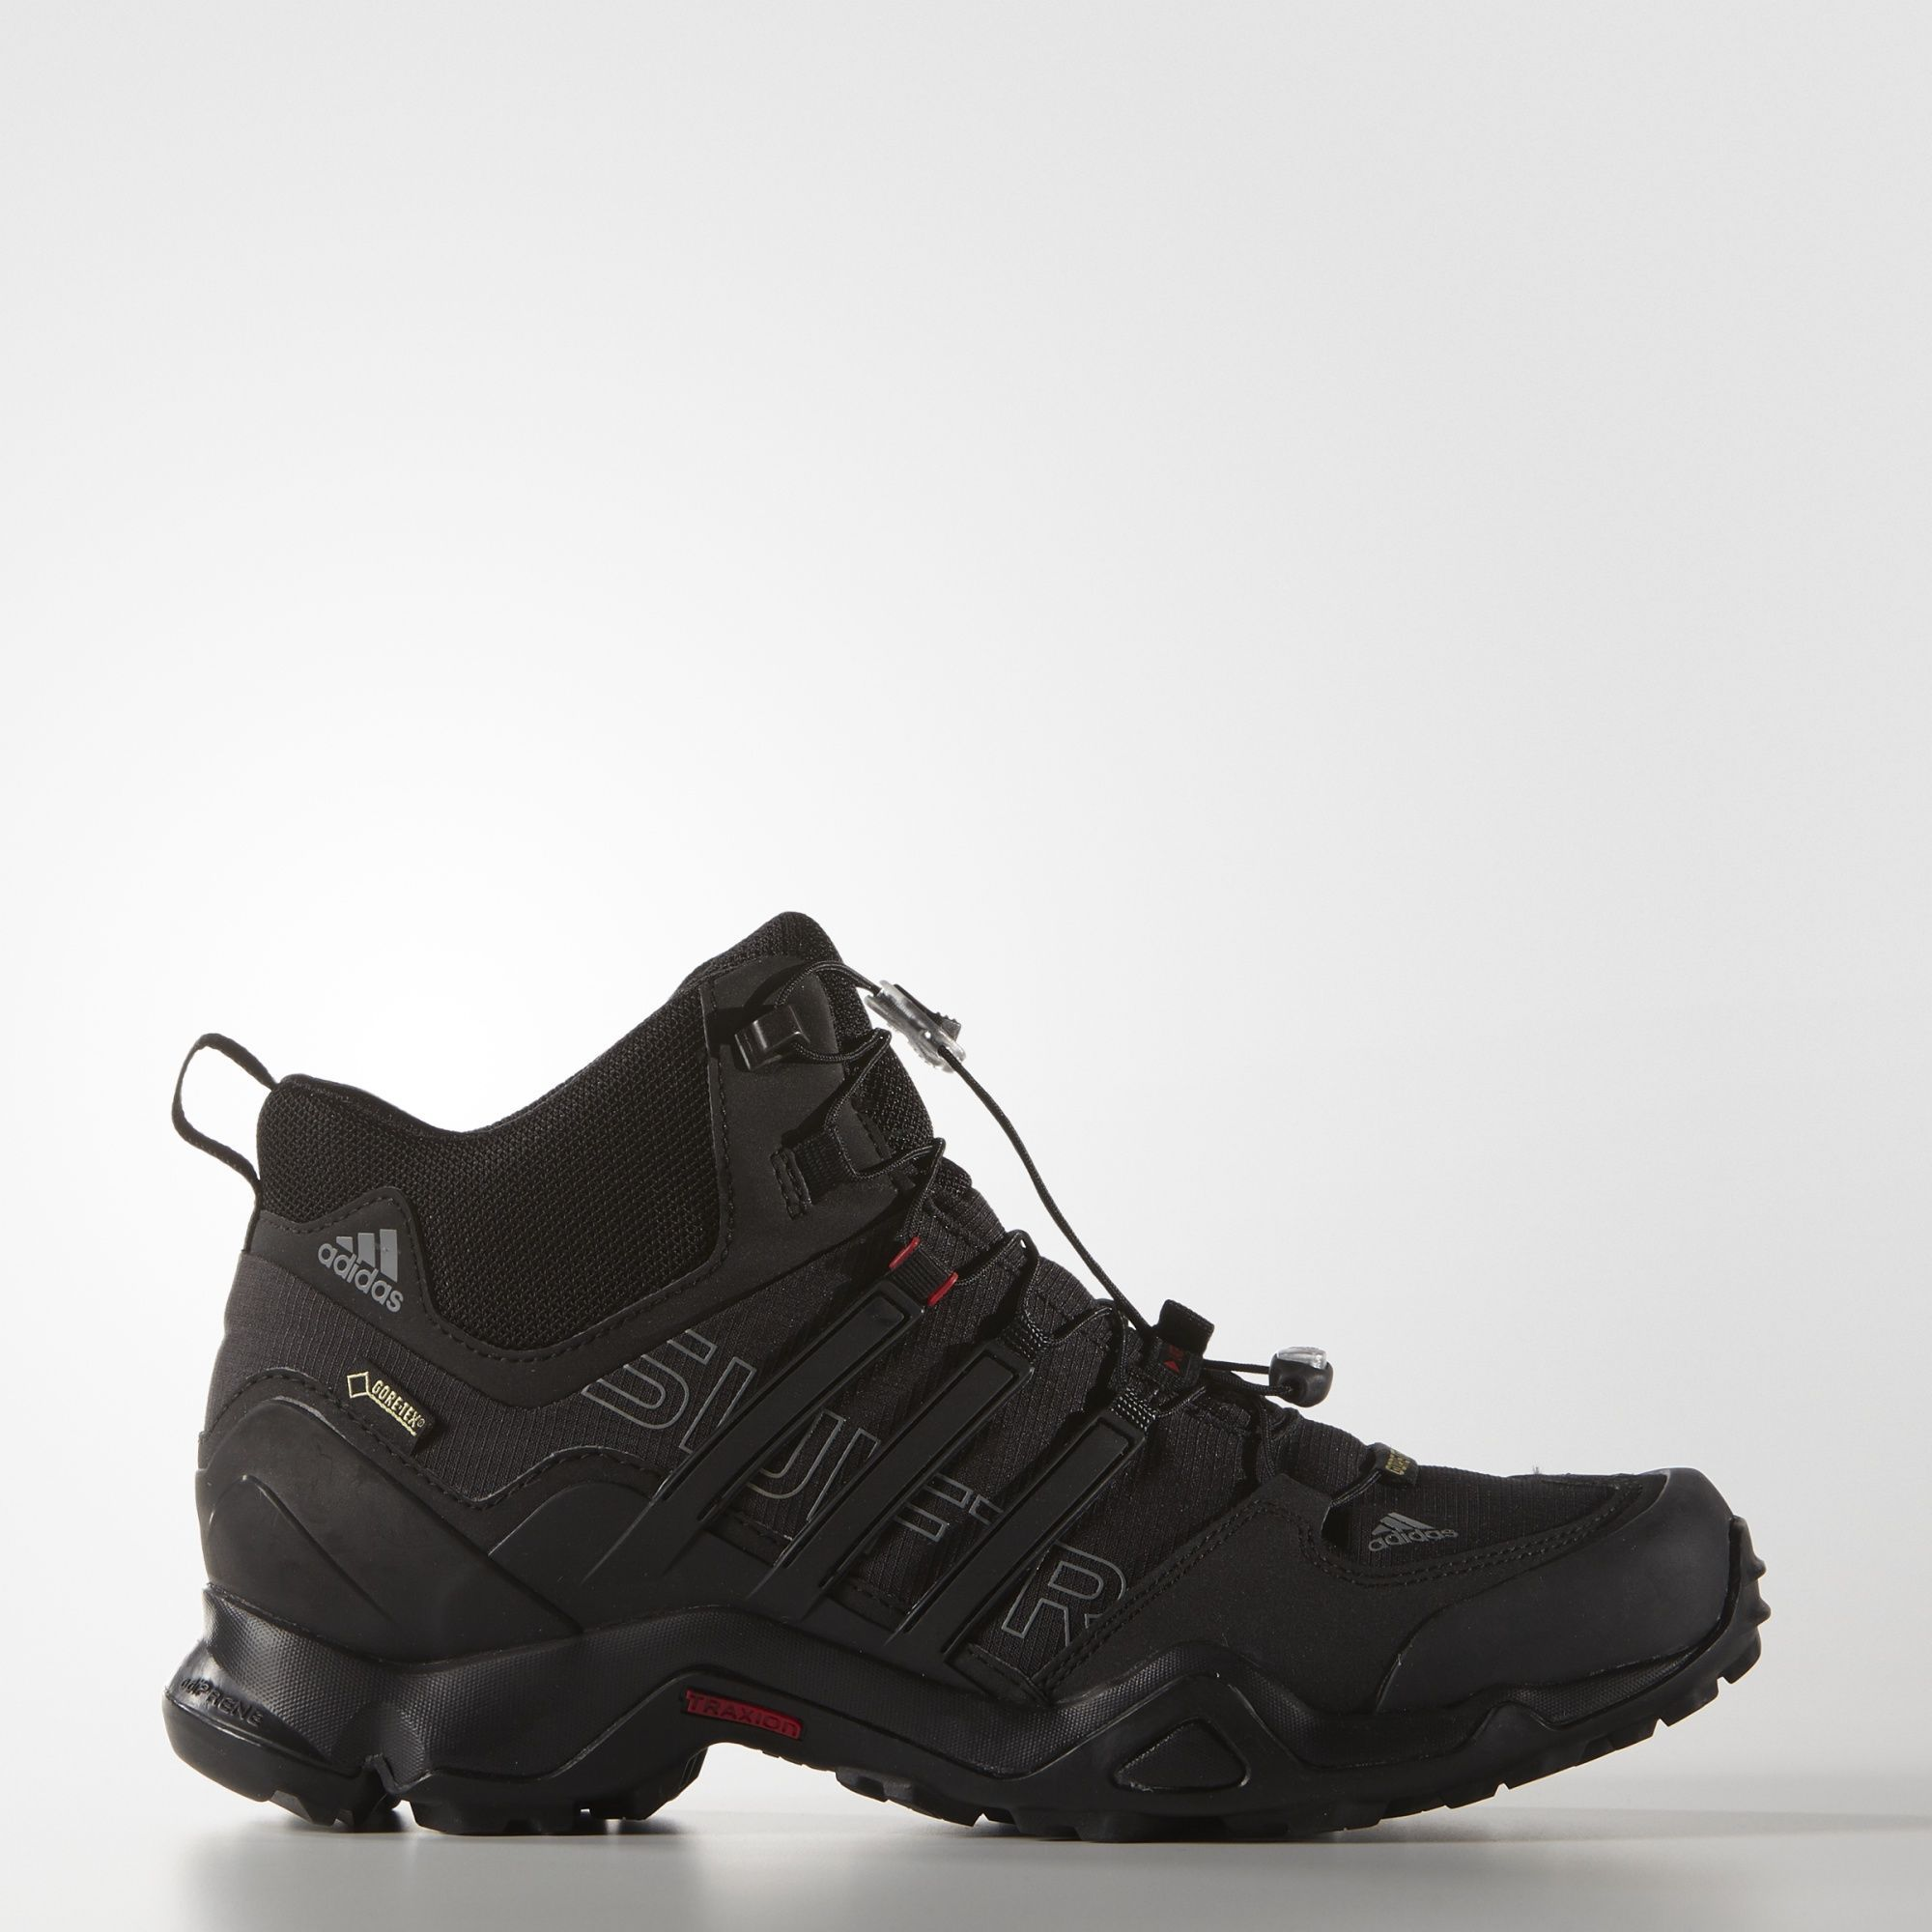 adidas Terrex Swift R Mid GTX Shoes